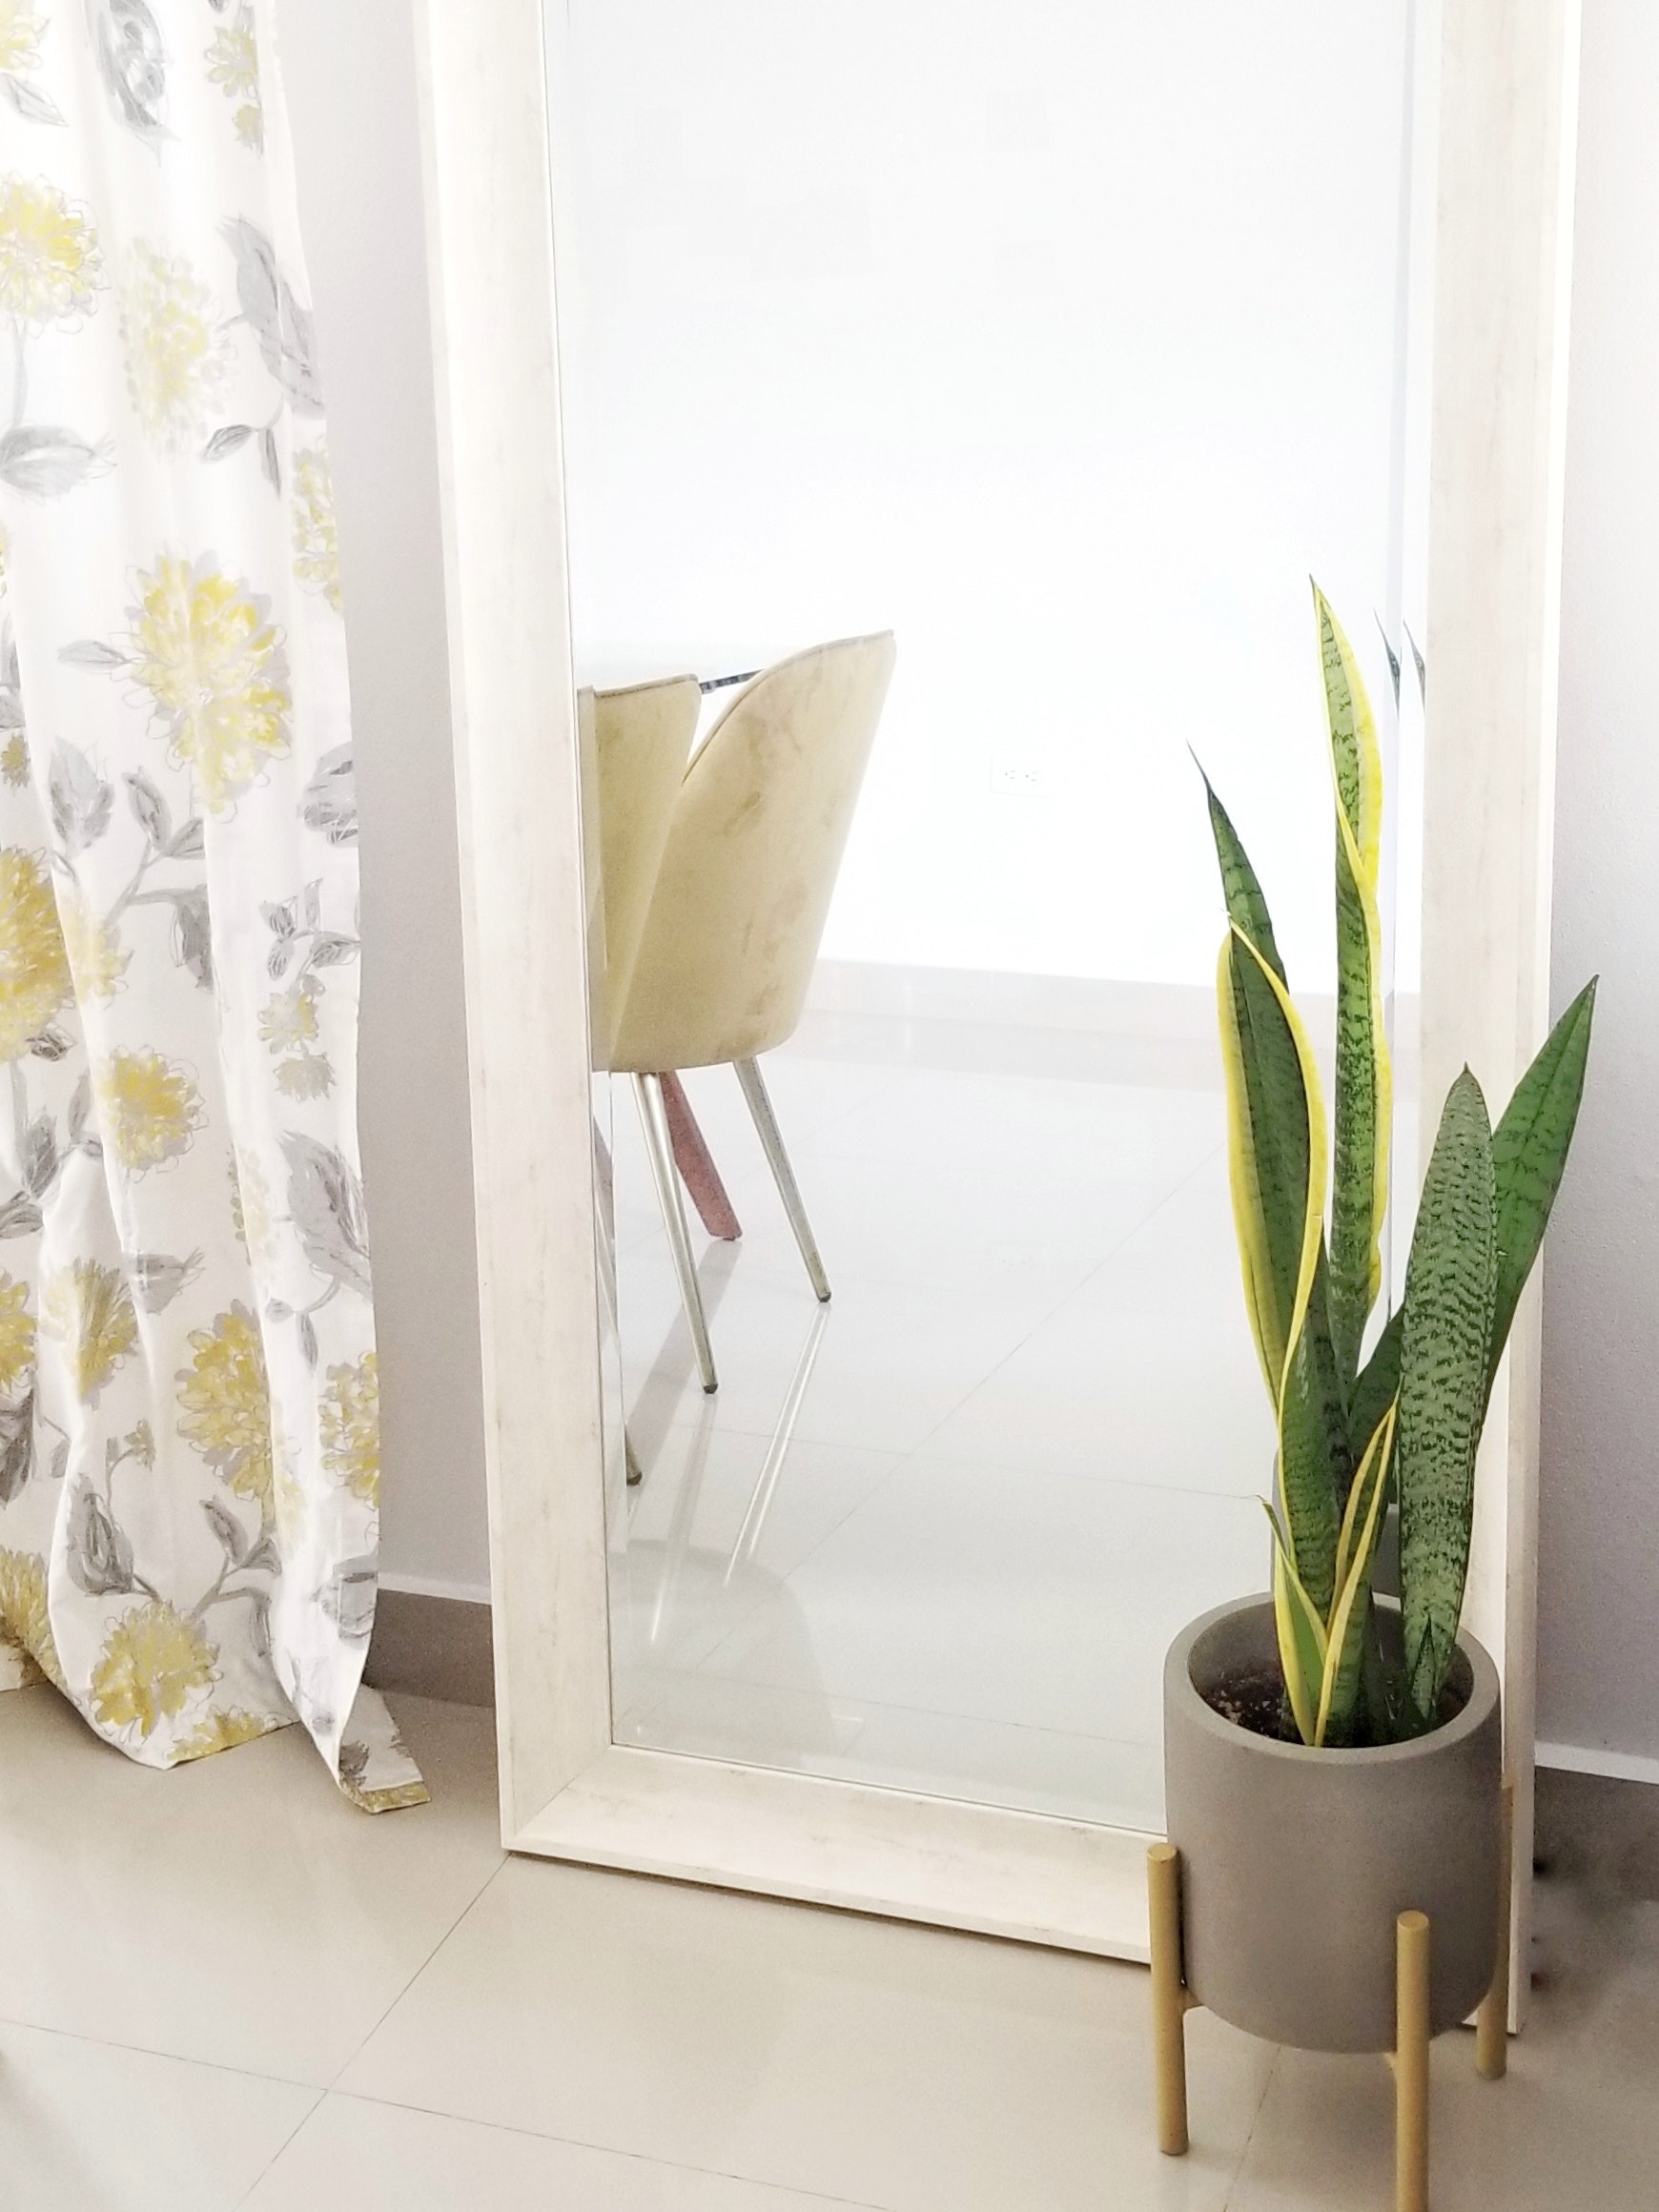 Snake Plant with a chair in the background